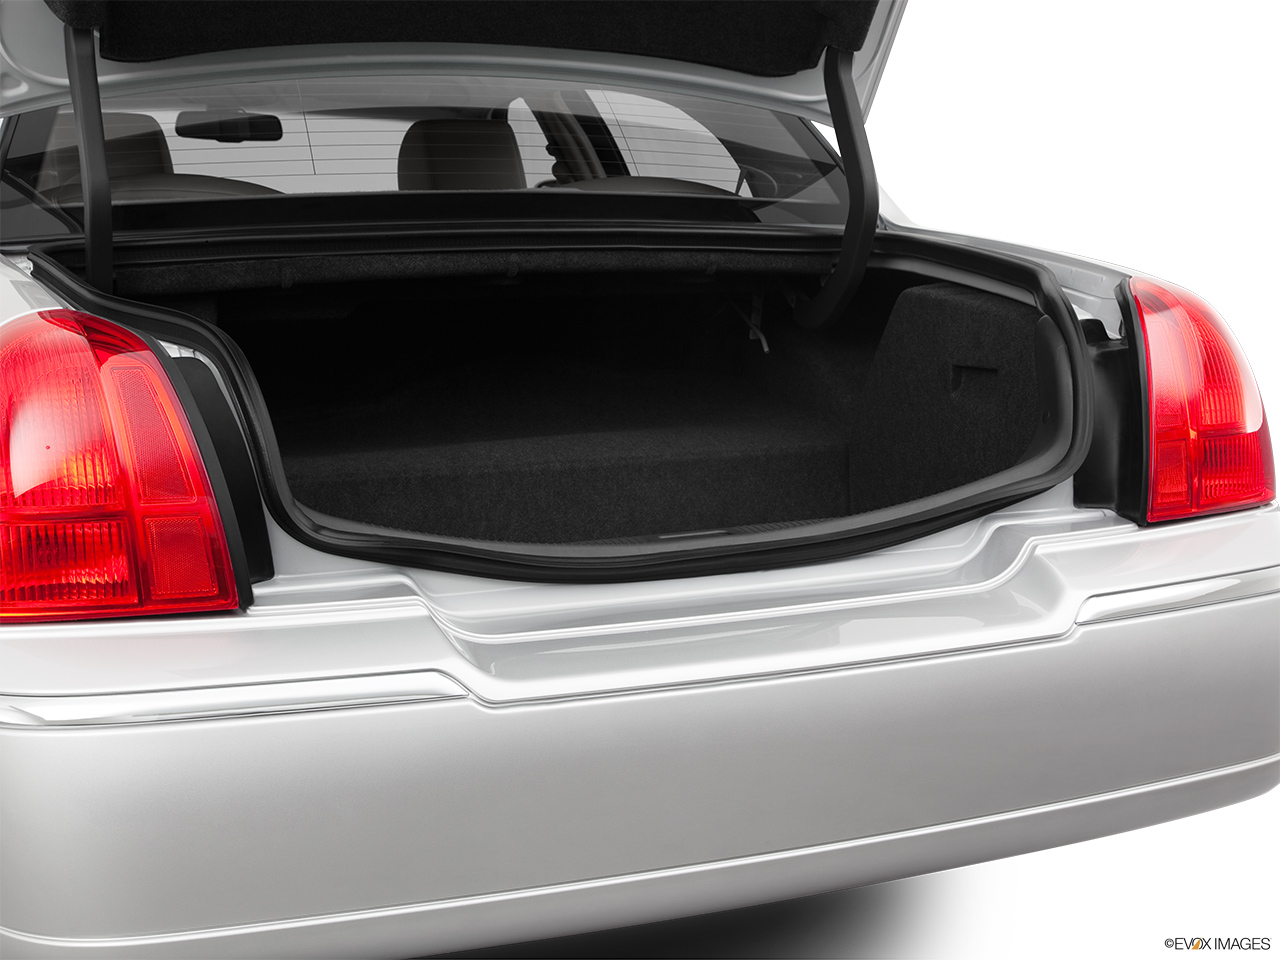 2011 Lincoln Town Car Signature Limited Trunk open.